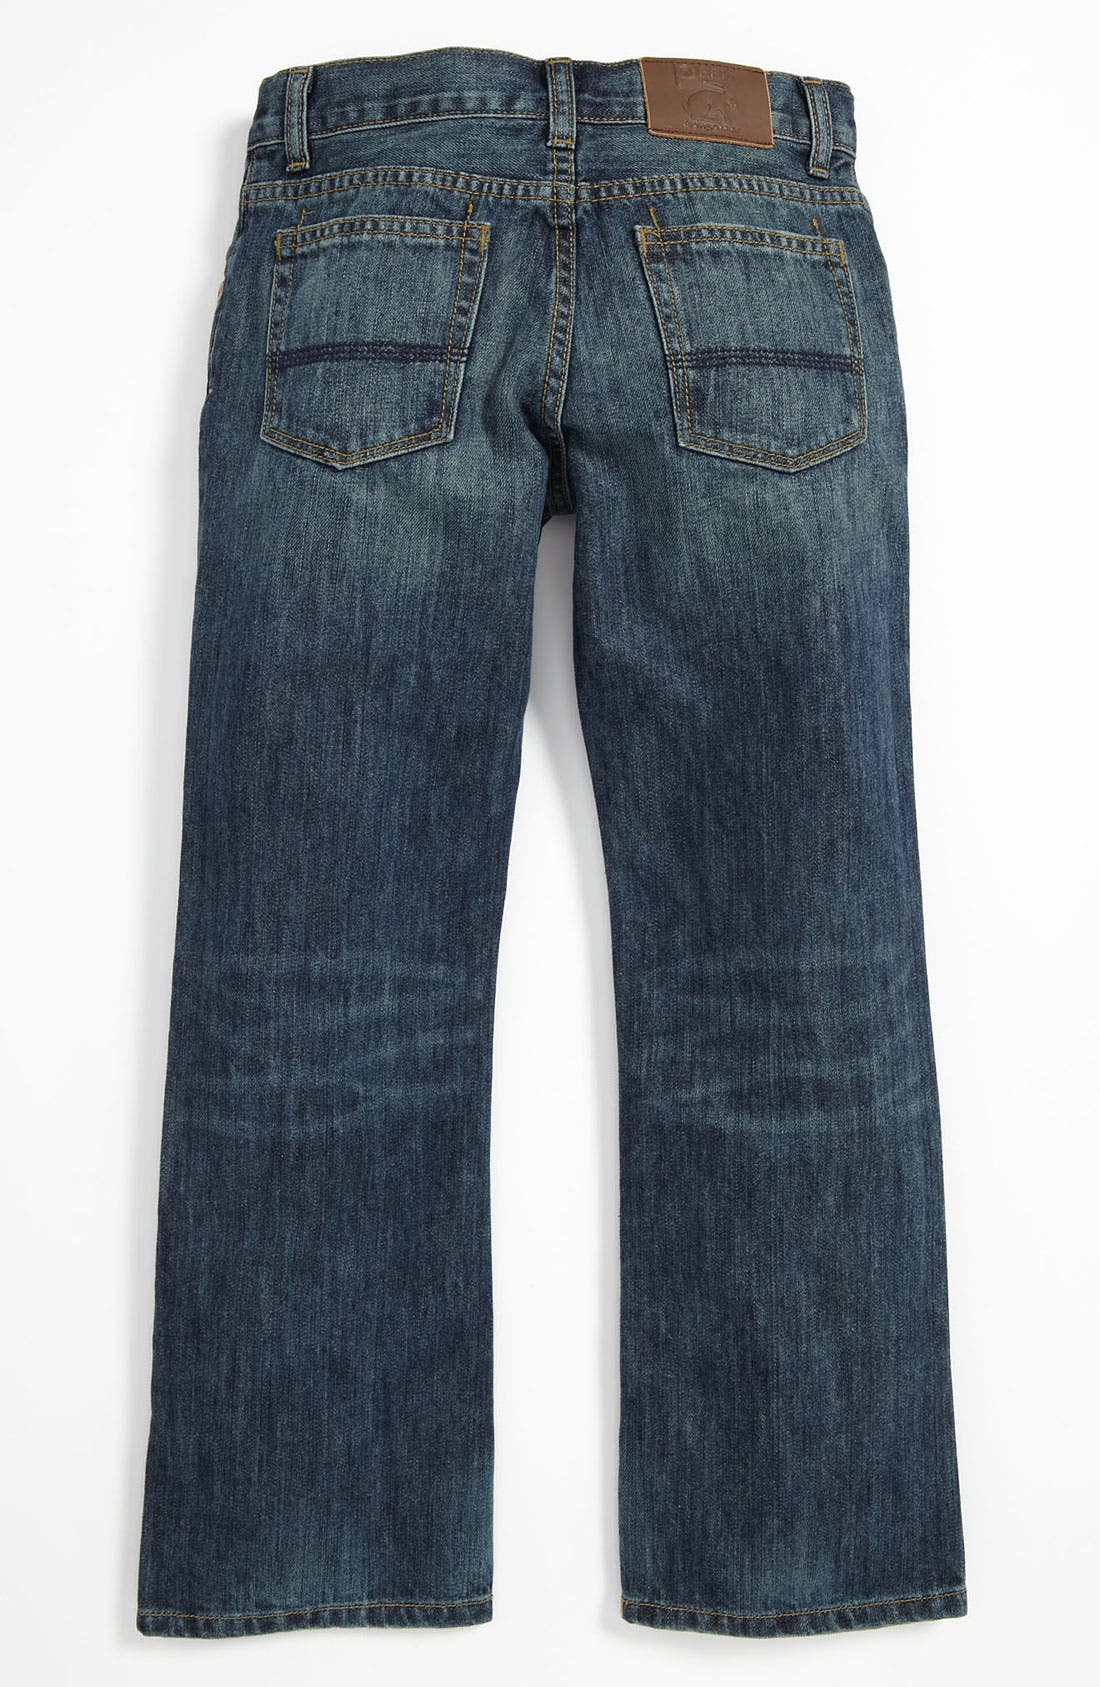 Main Image - Peek 'Sullivan' Jeans (Toddler, Little Boys & Big Boys)